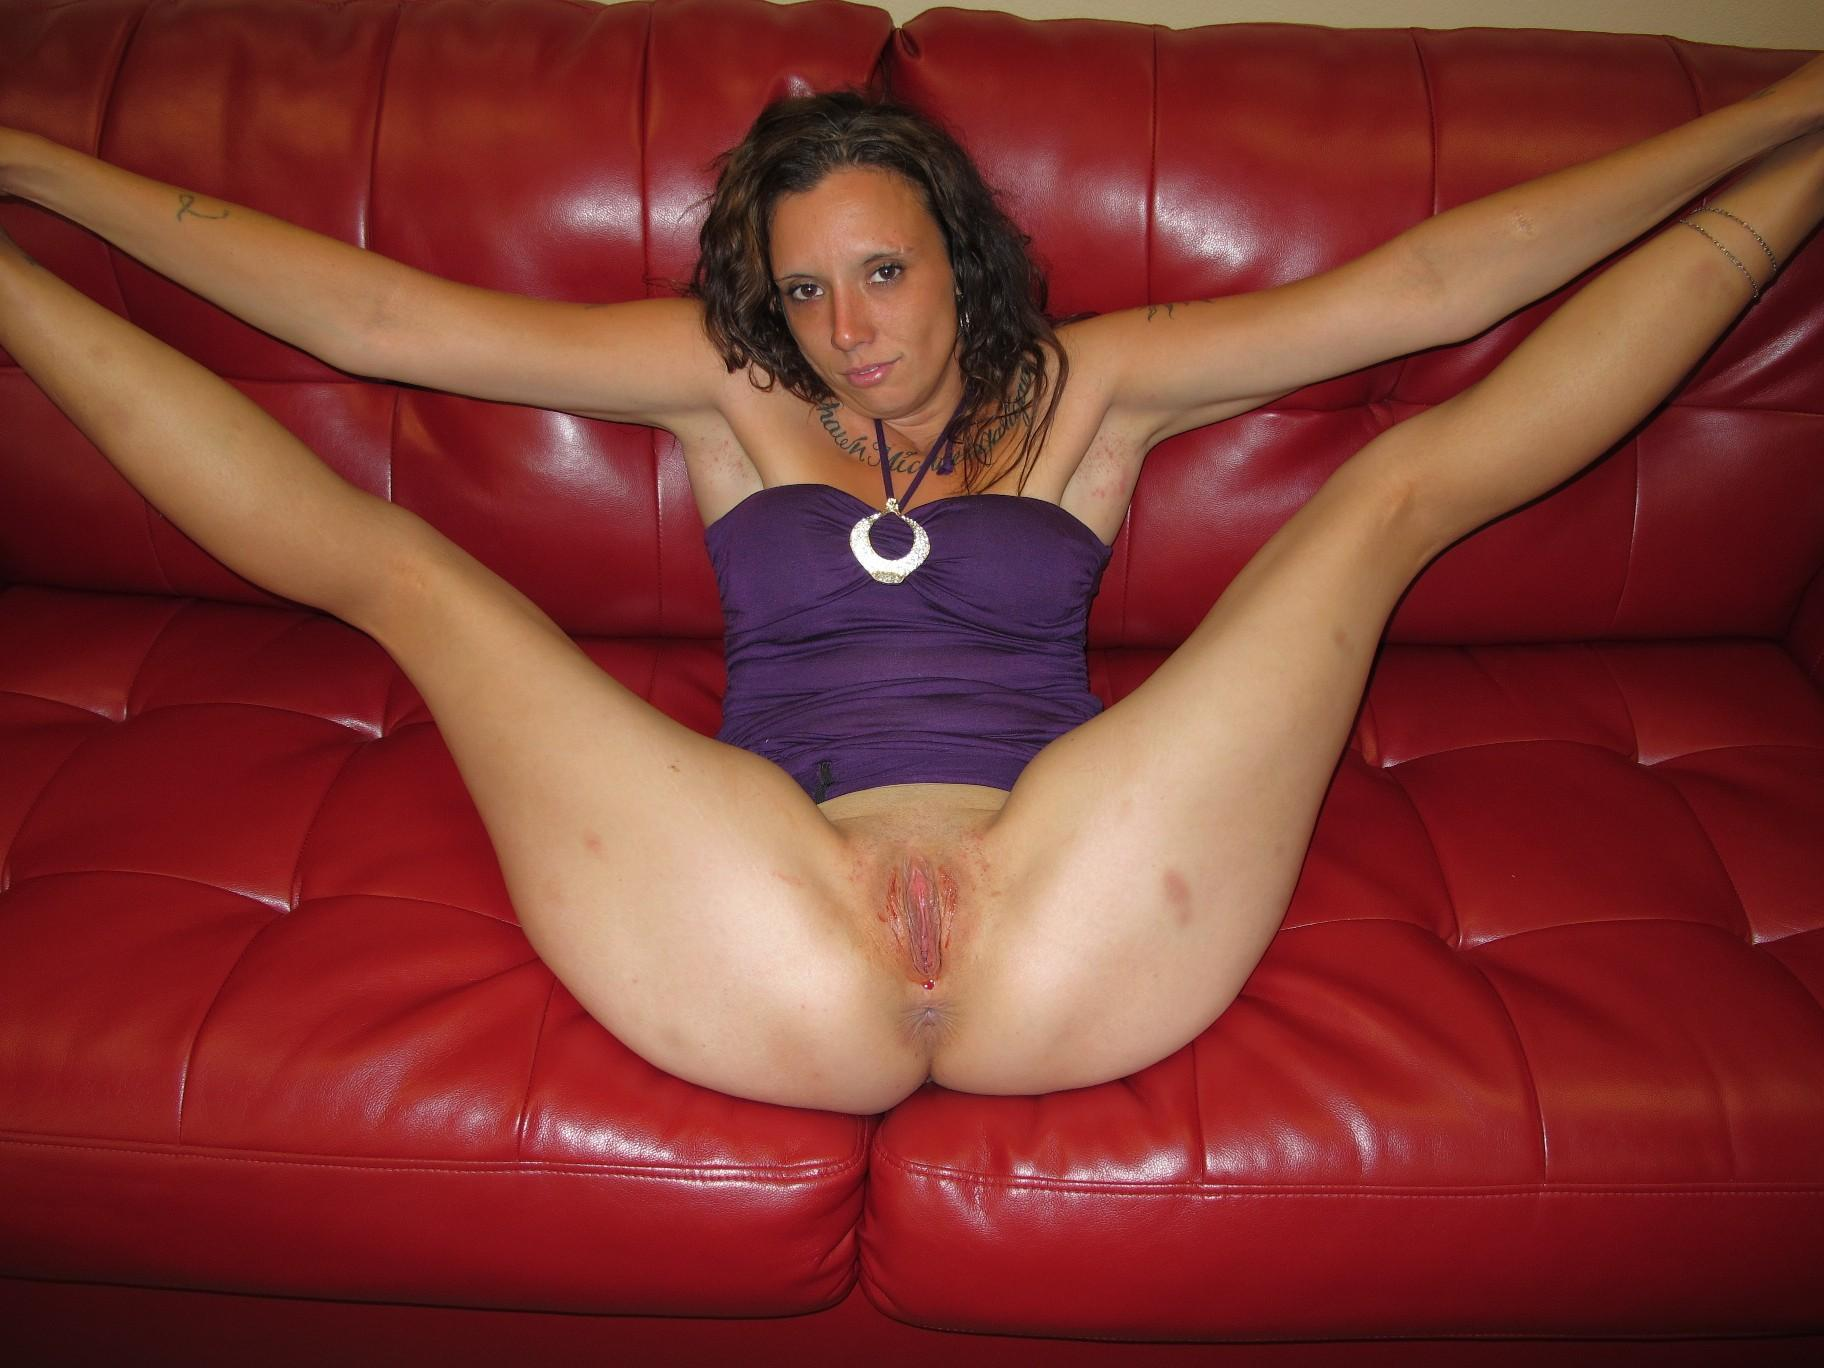 amateur nude girl legs wide